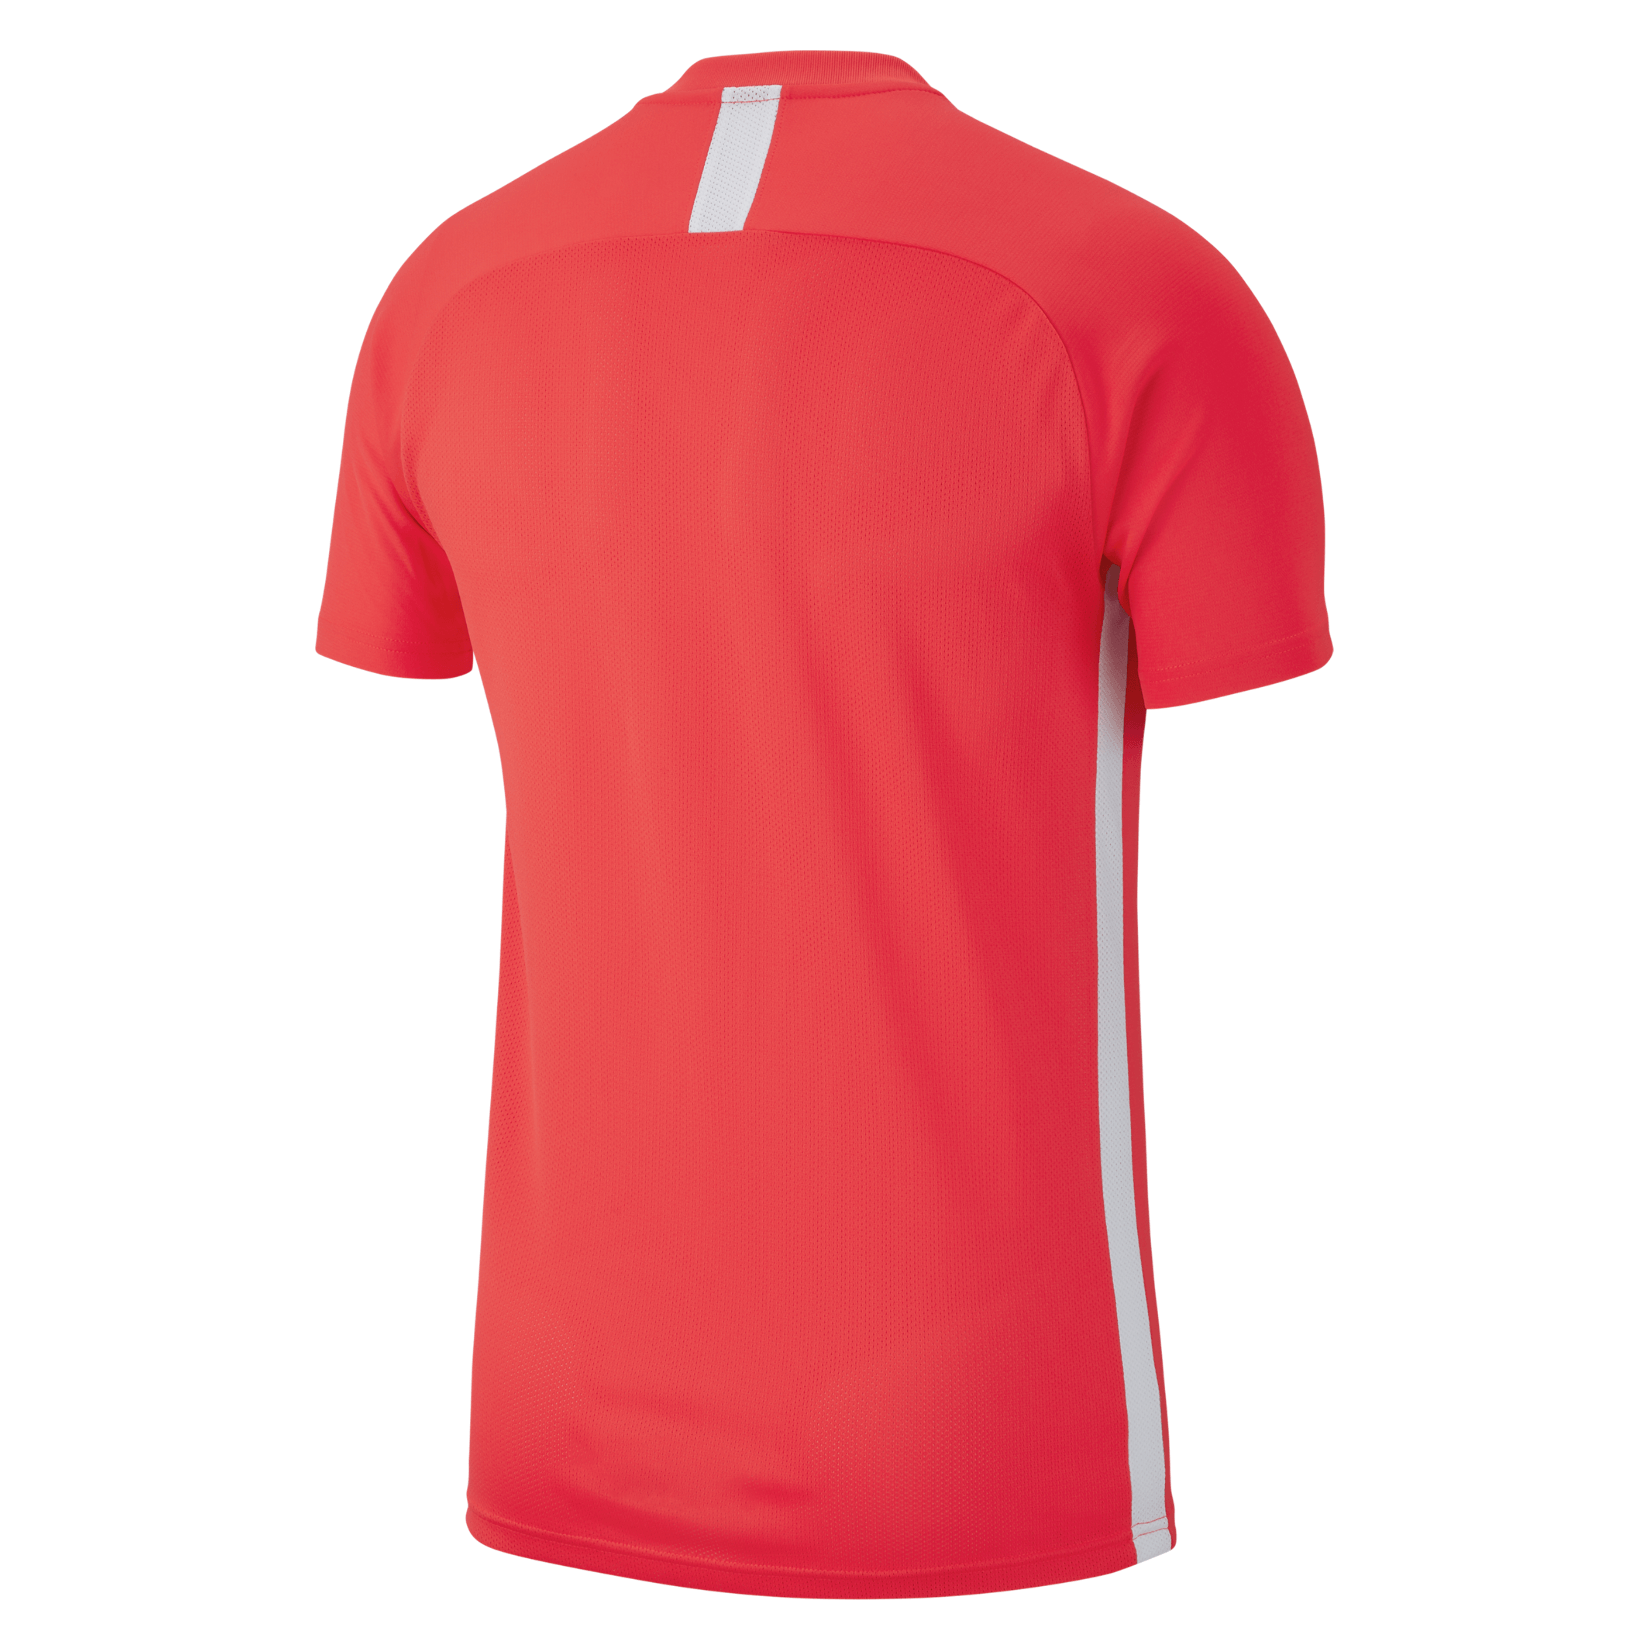 Nike Dri-fit Academy 19 Short Sleeve Top Bright Crimson-White-White